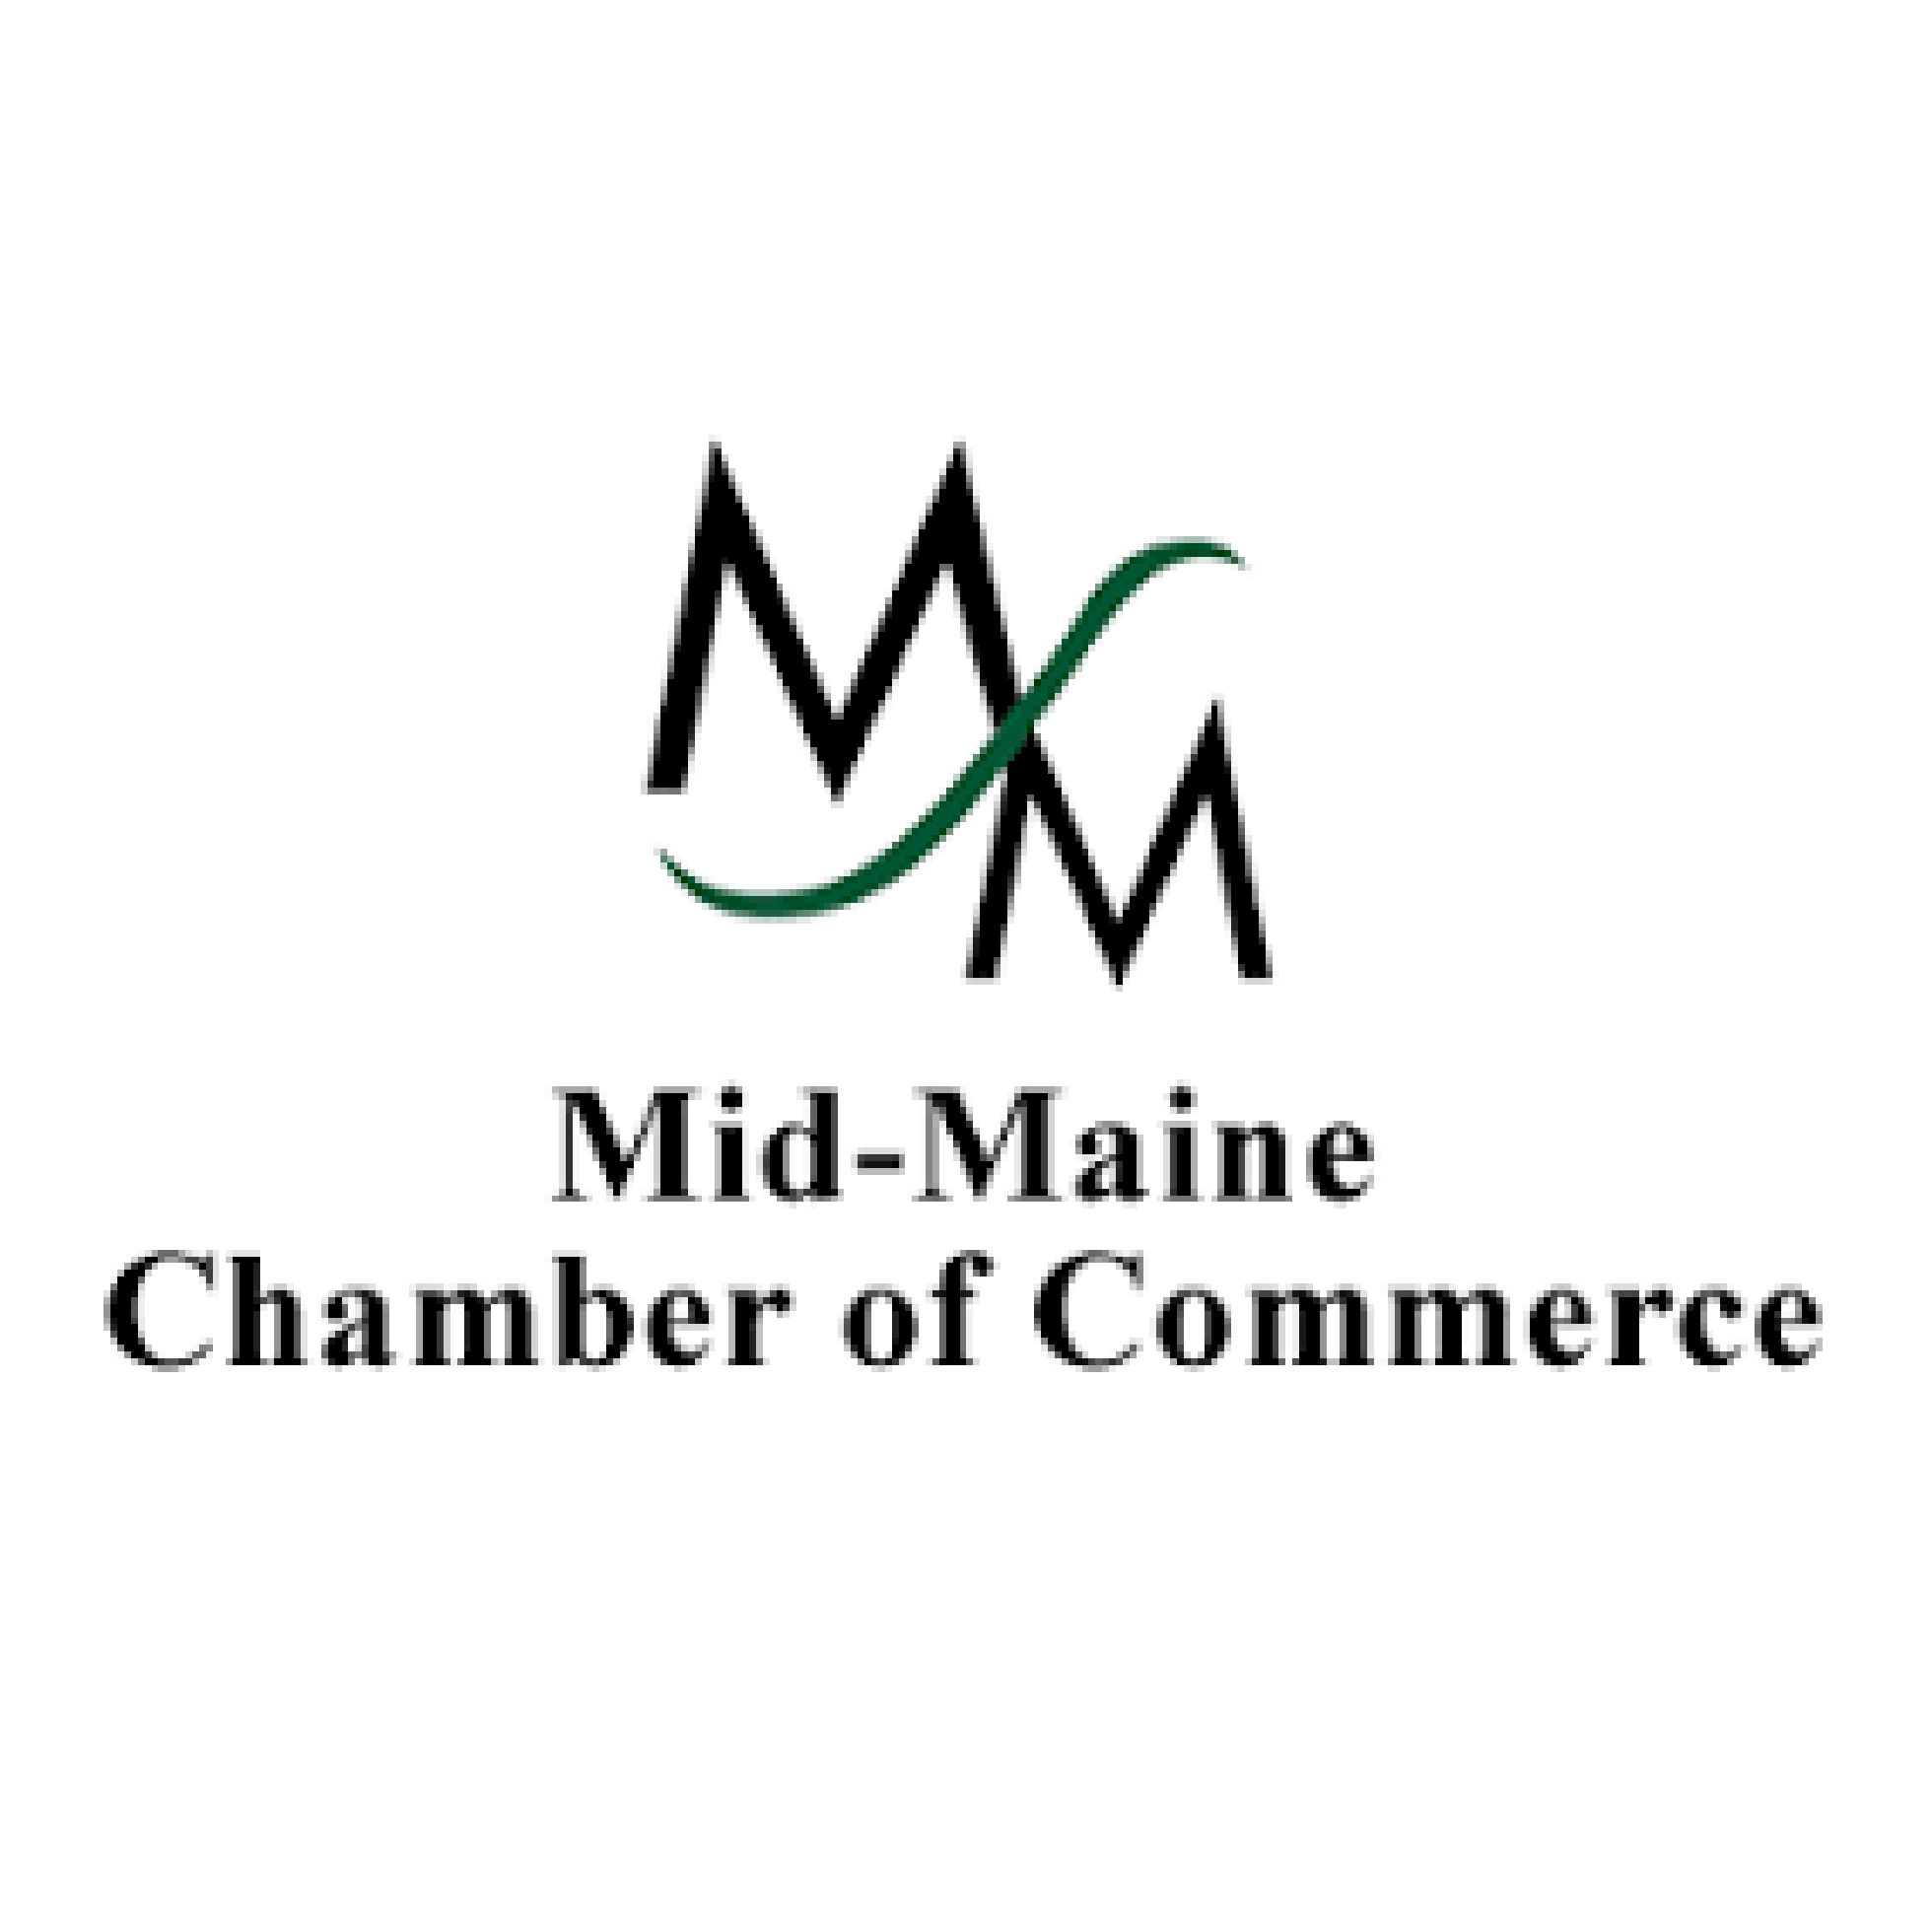 Mid-Maine Chamber of Commerce